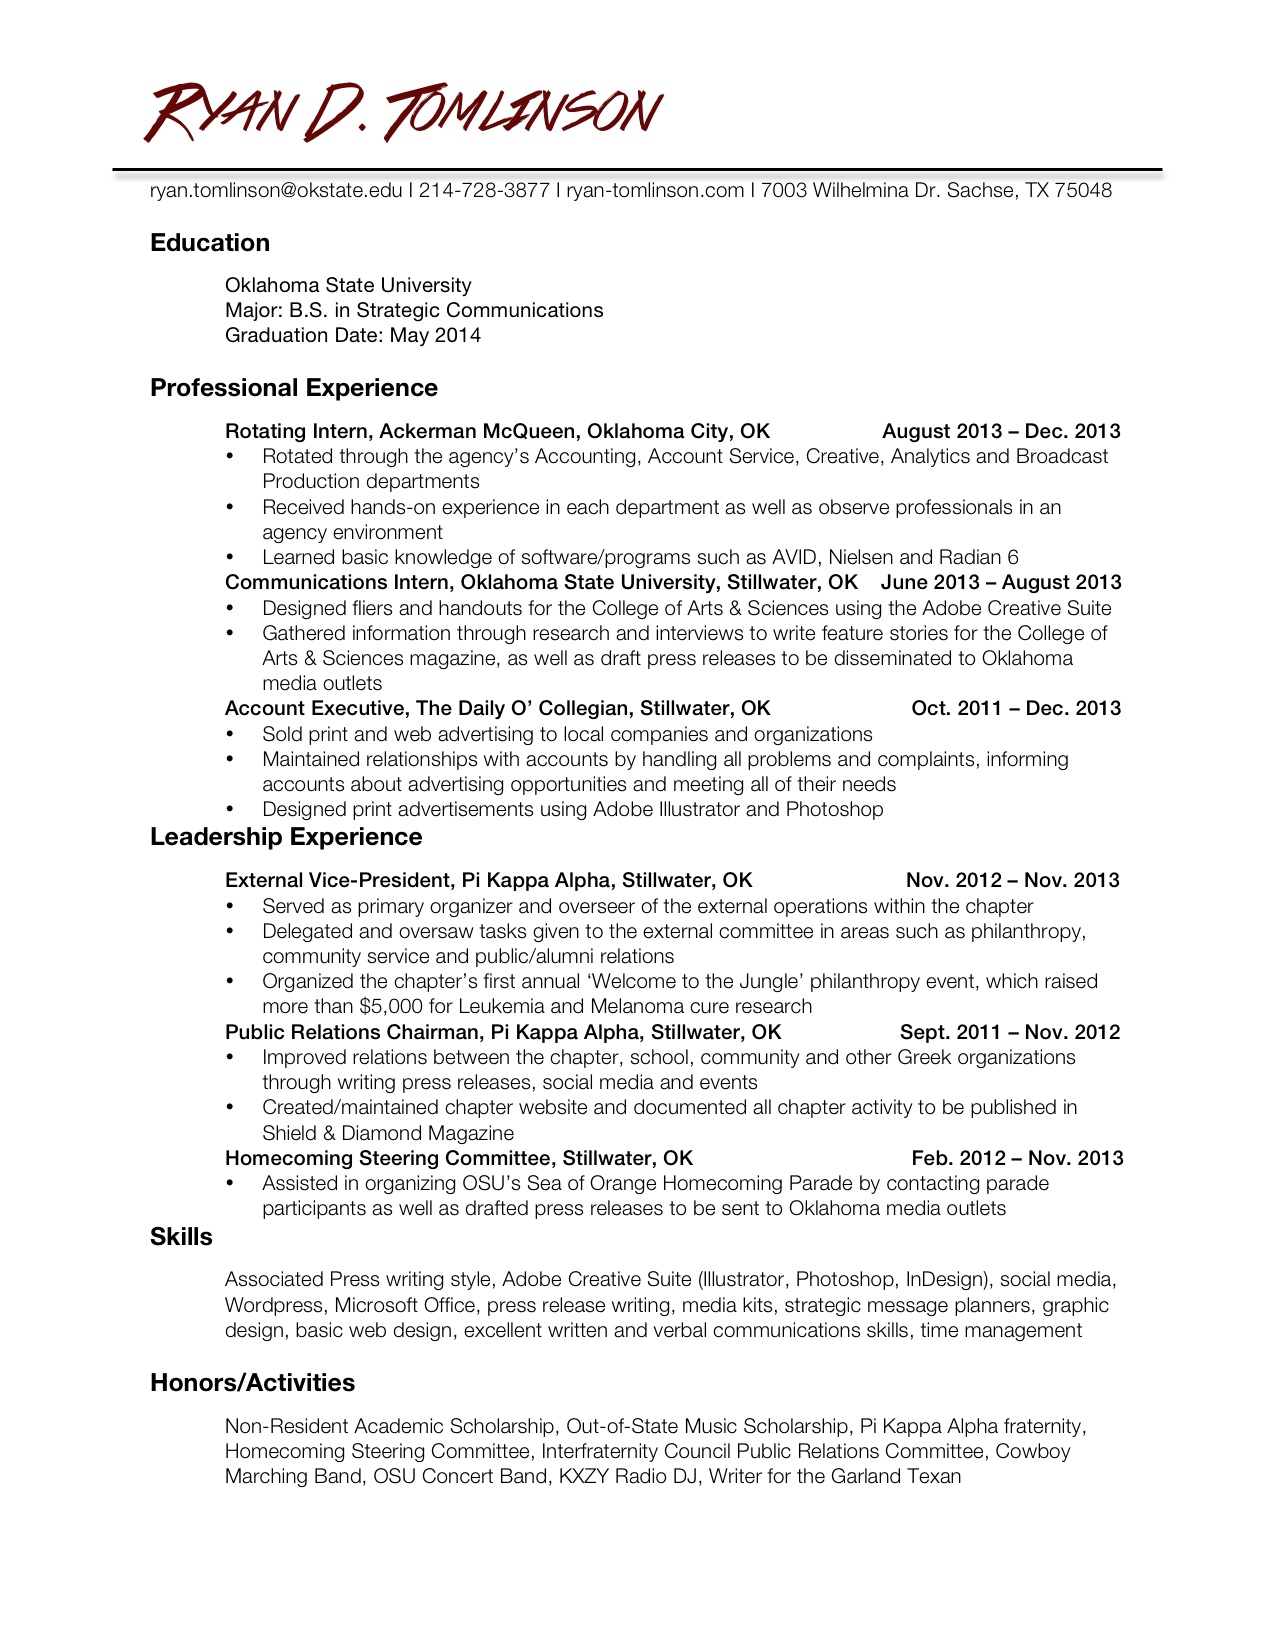 Related coursework on a resume